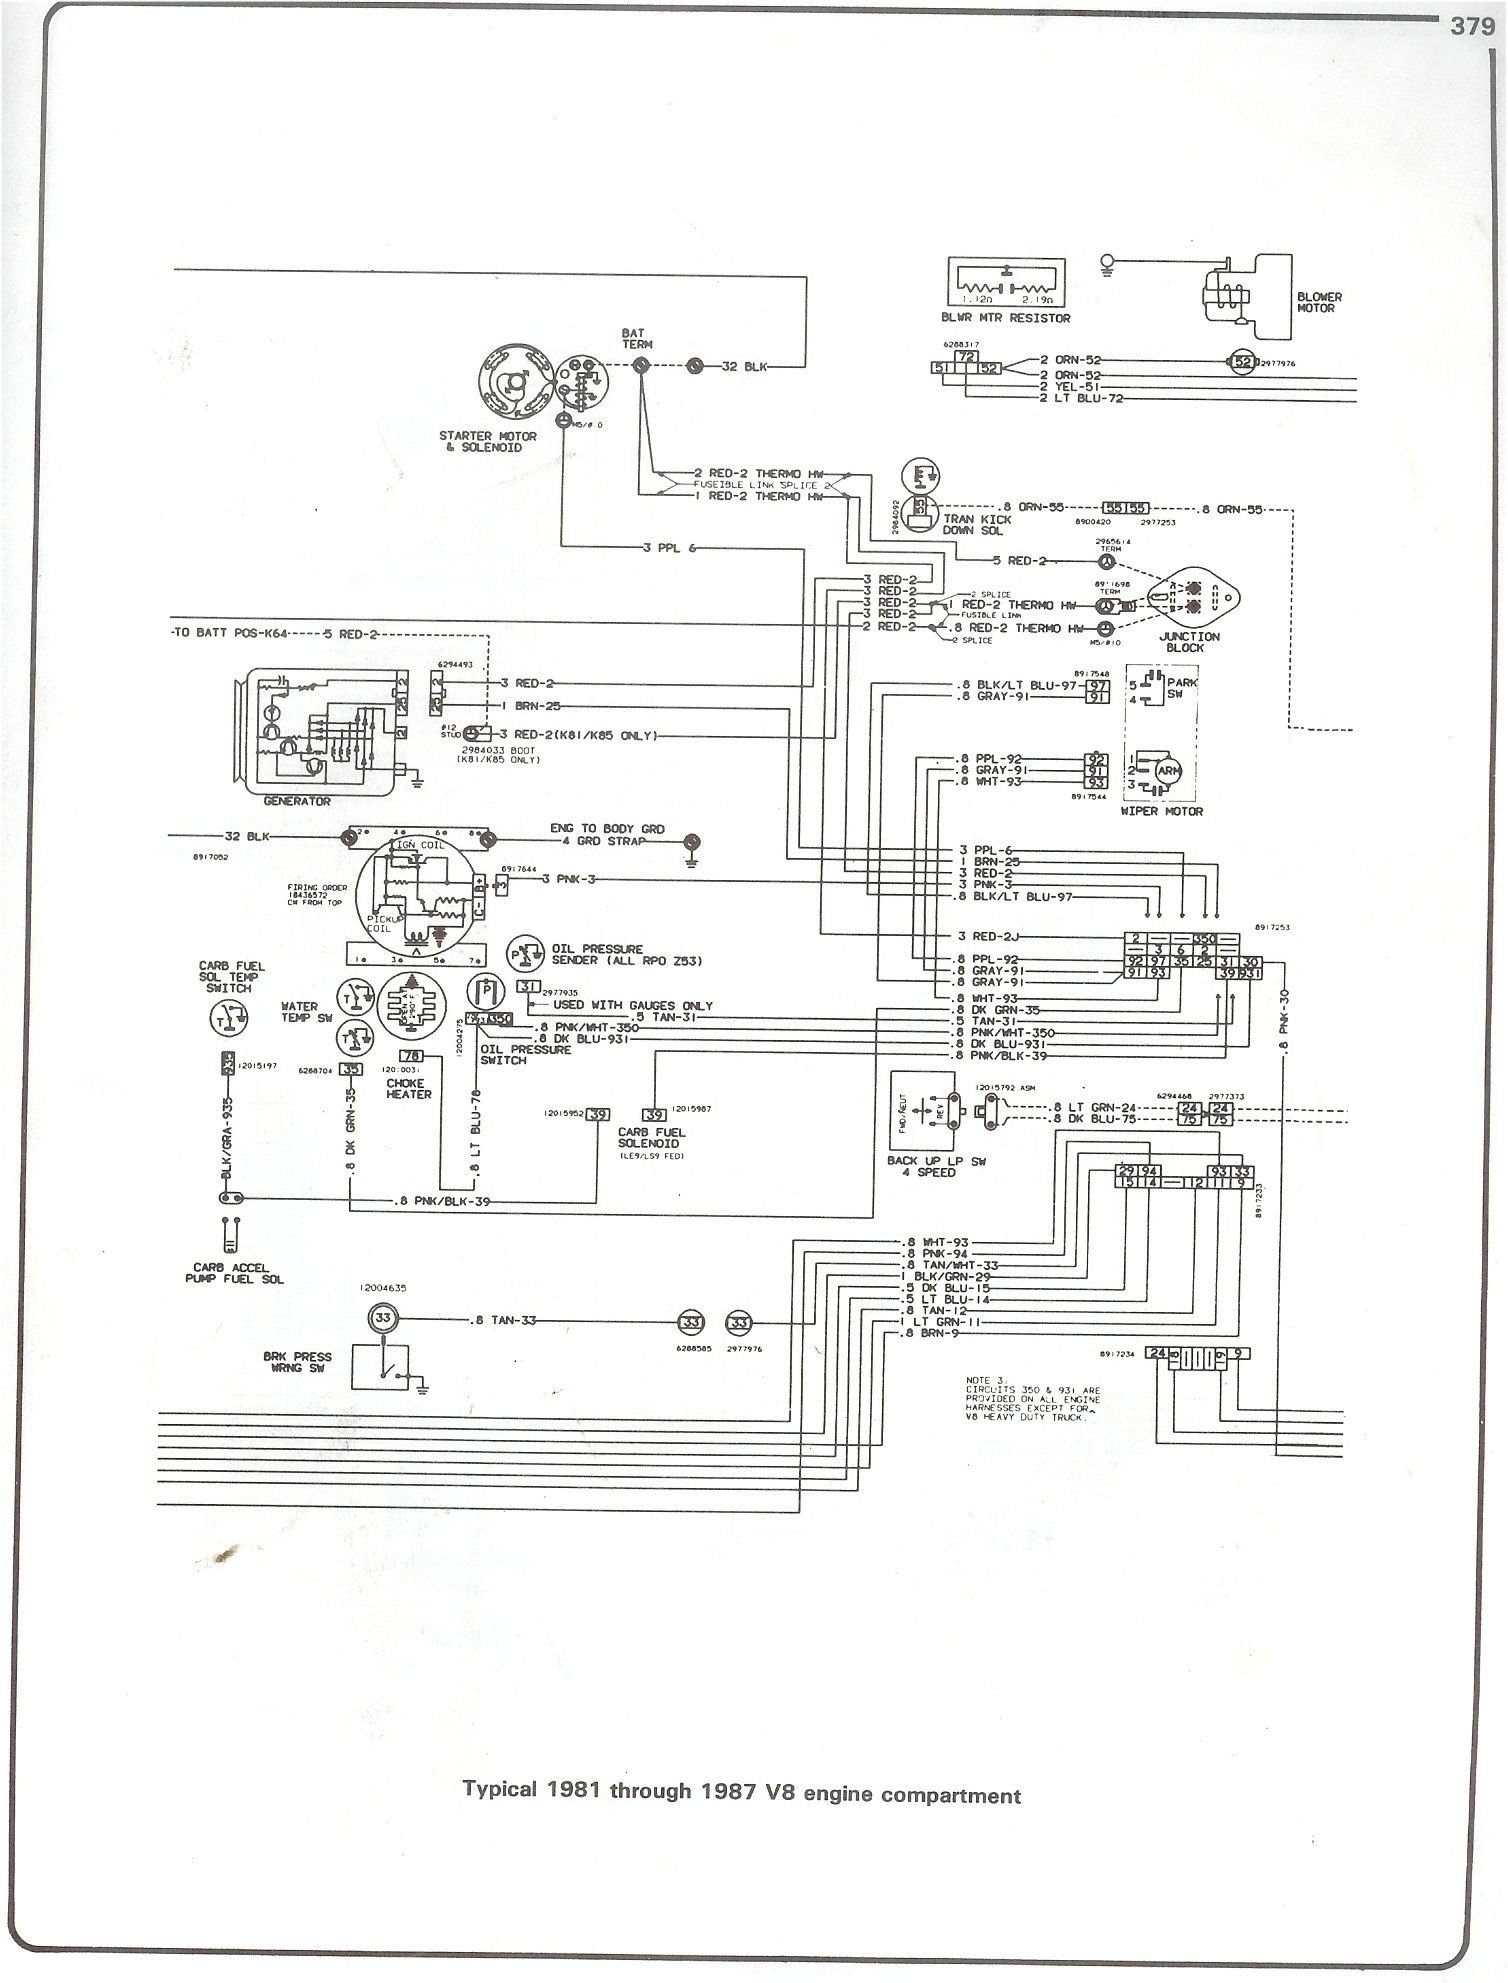 Sensational Pin By Malcolm Cail On Projects To Try 87 Chevy Truck 85 Chevy Wiring Cloud Biosomenaidewilluminateatxorg